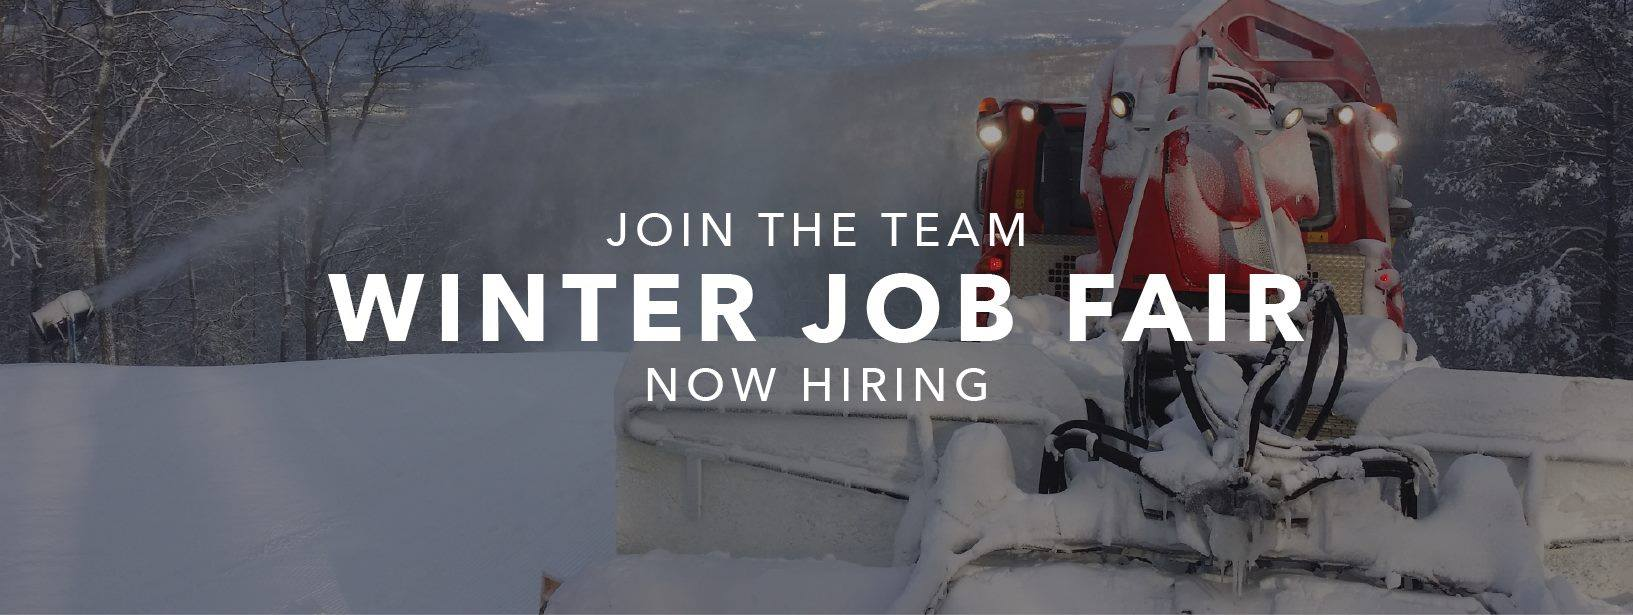 Montage Jobs Winter Job Fair Pa Ski Resort Skiing Snowboarding Pennsylvania